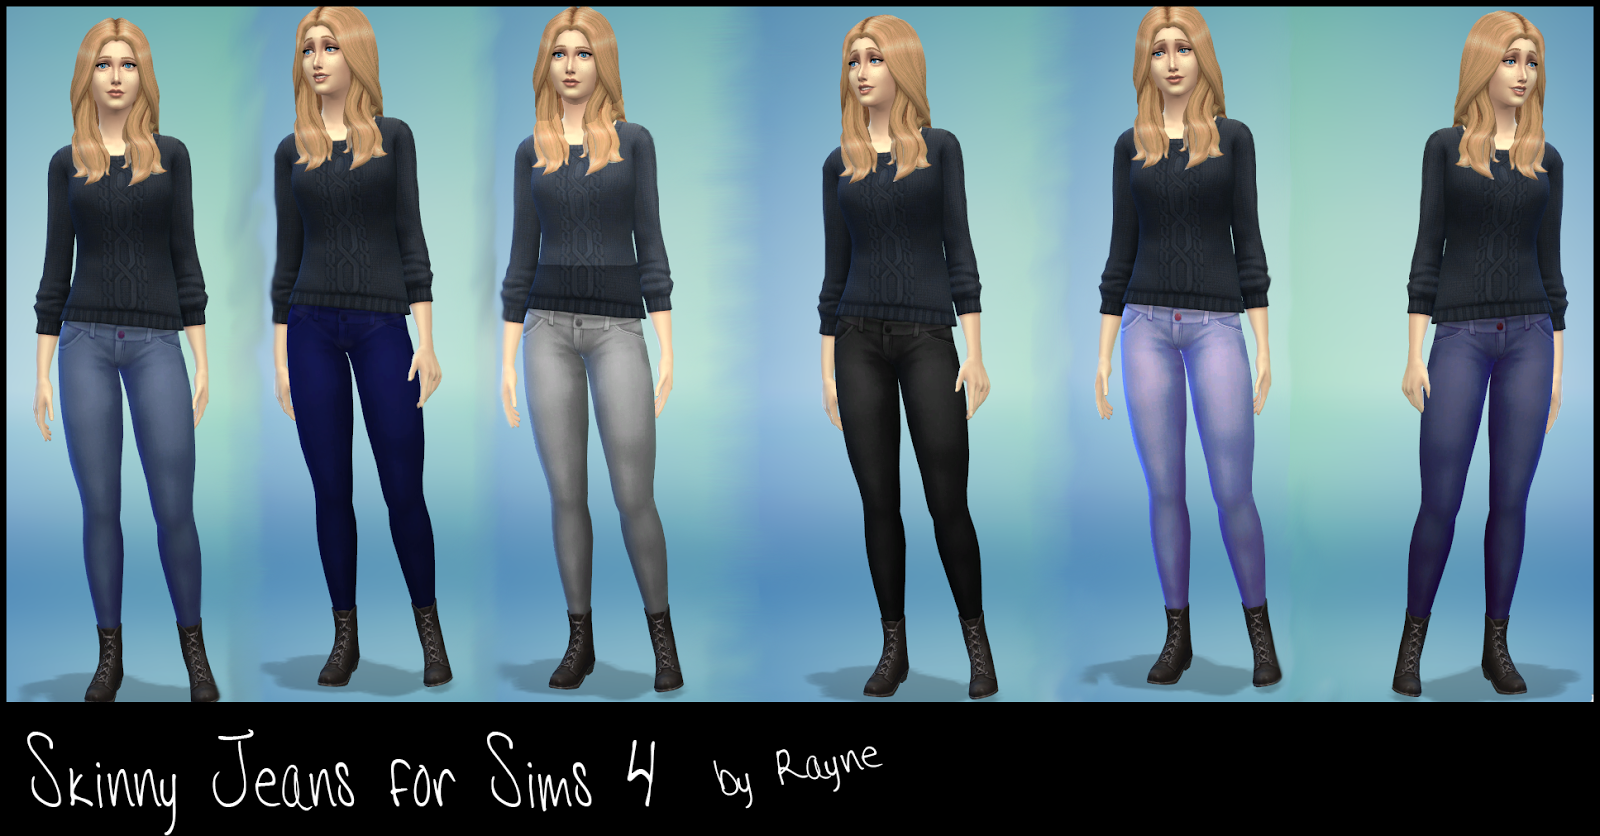 Skinny Jeans for Females by Rayne